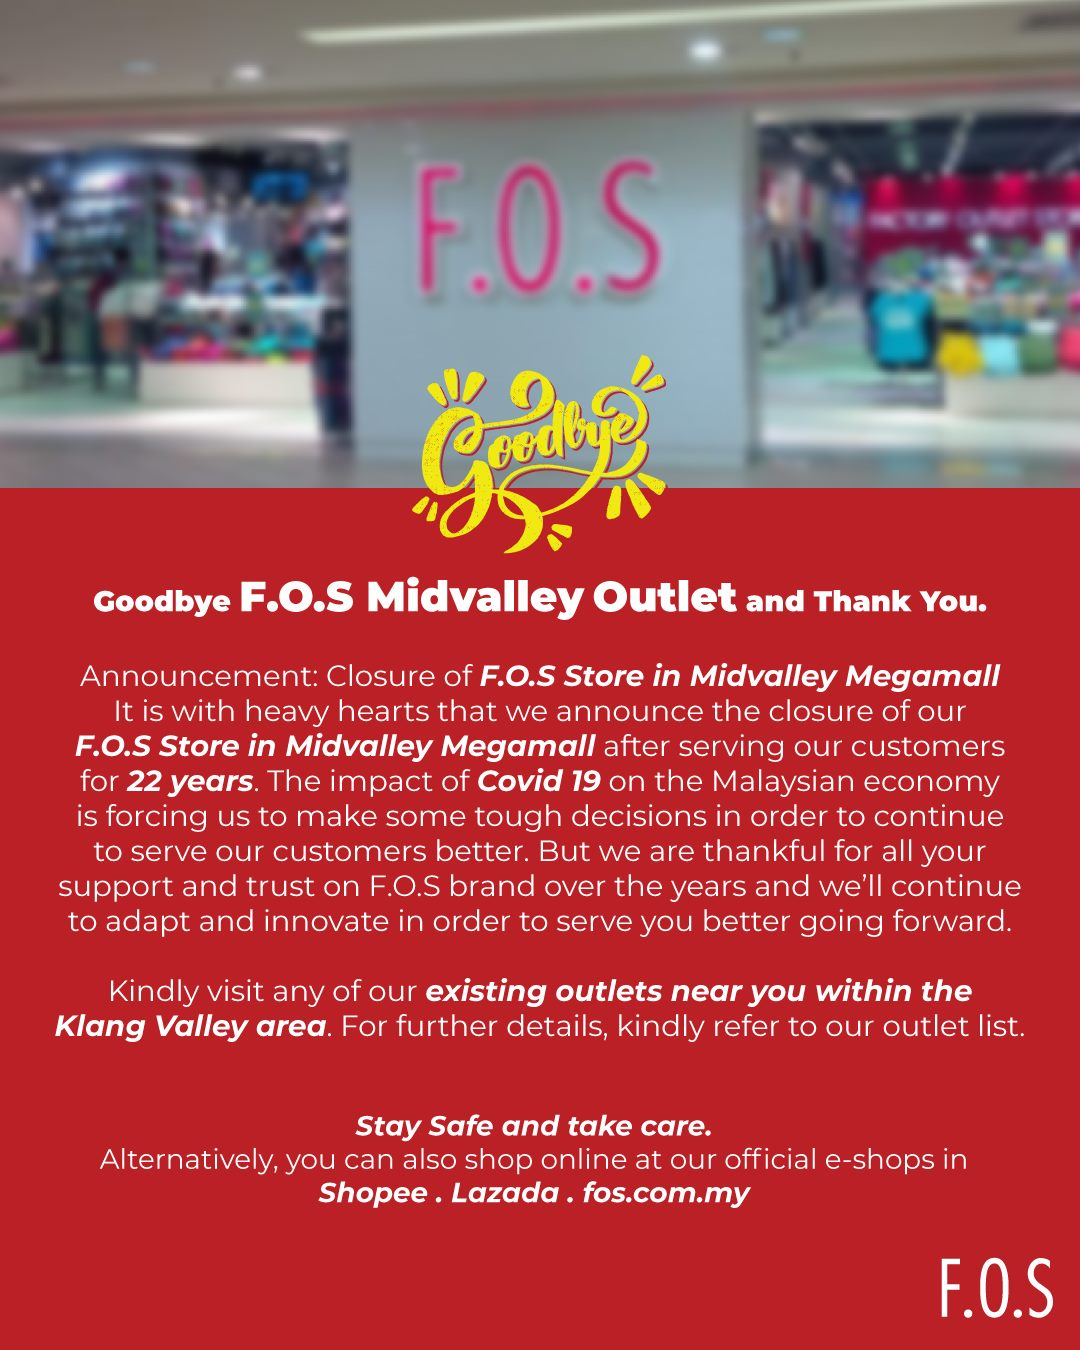 F.O.S Mid Valley outlet closure announcement